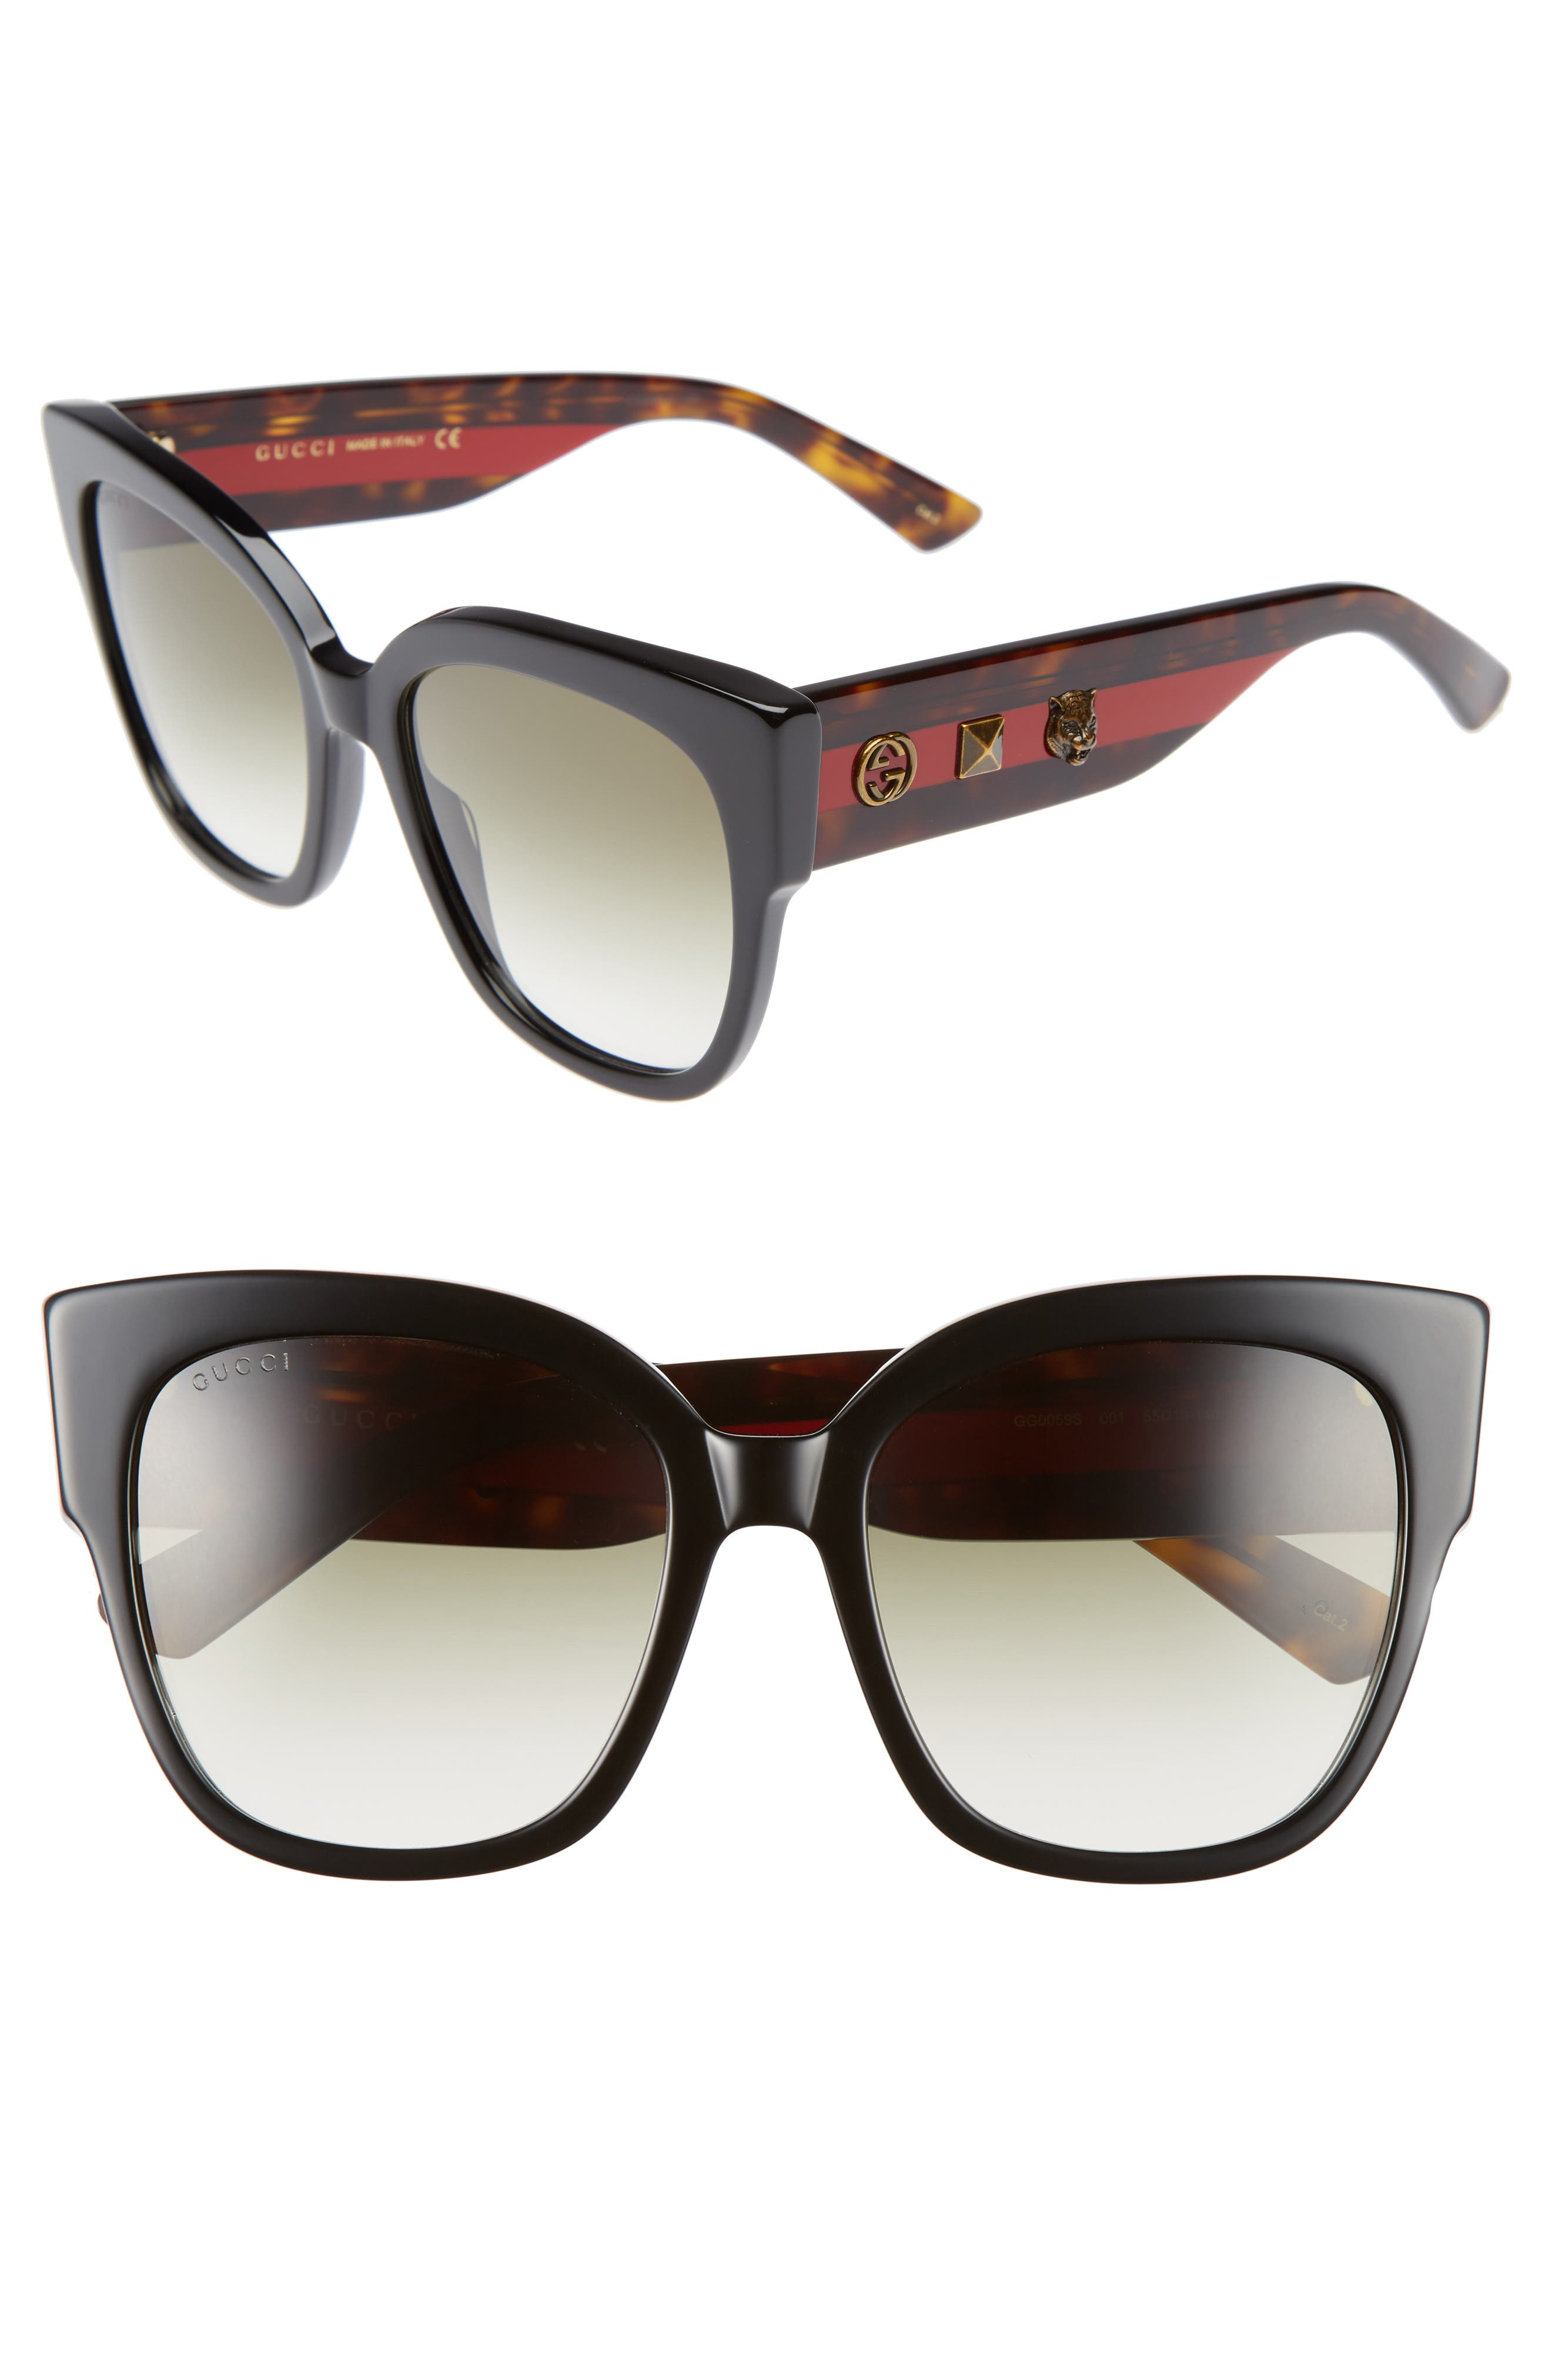 55mm Butterfly Sunglasses,                             Alternate thumbnail 2, color,                             001